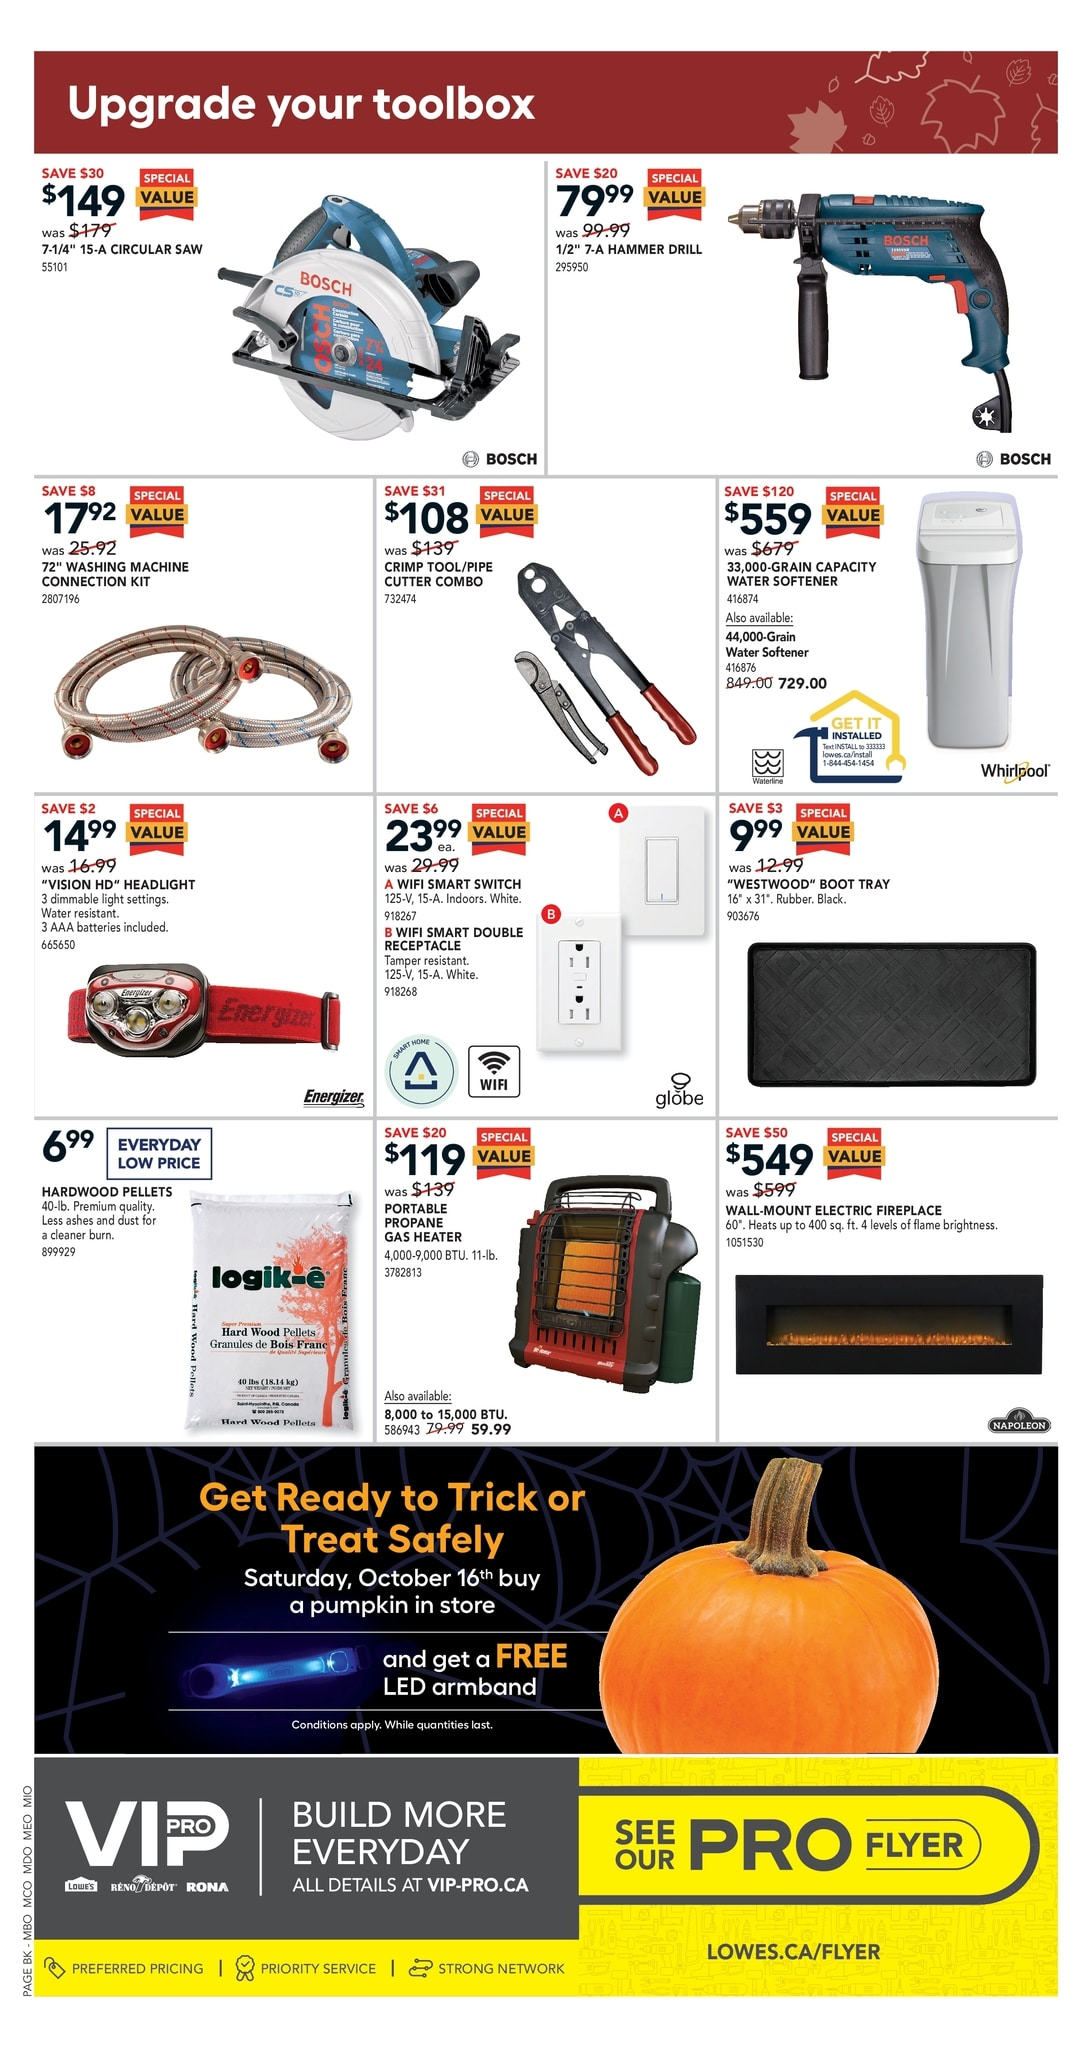 Lowe's - Weekly Flyer Specials - Page 2